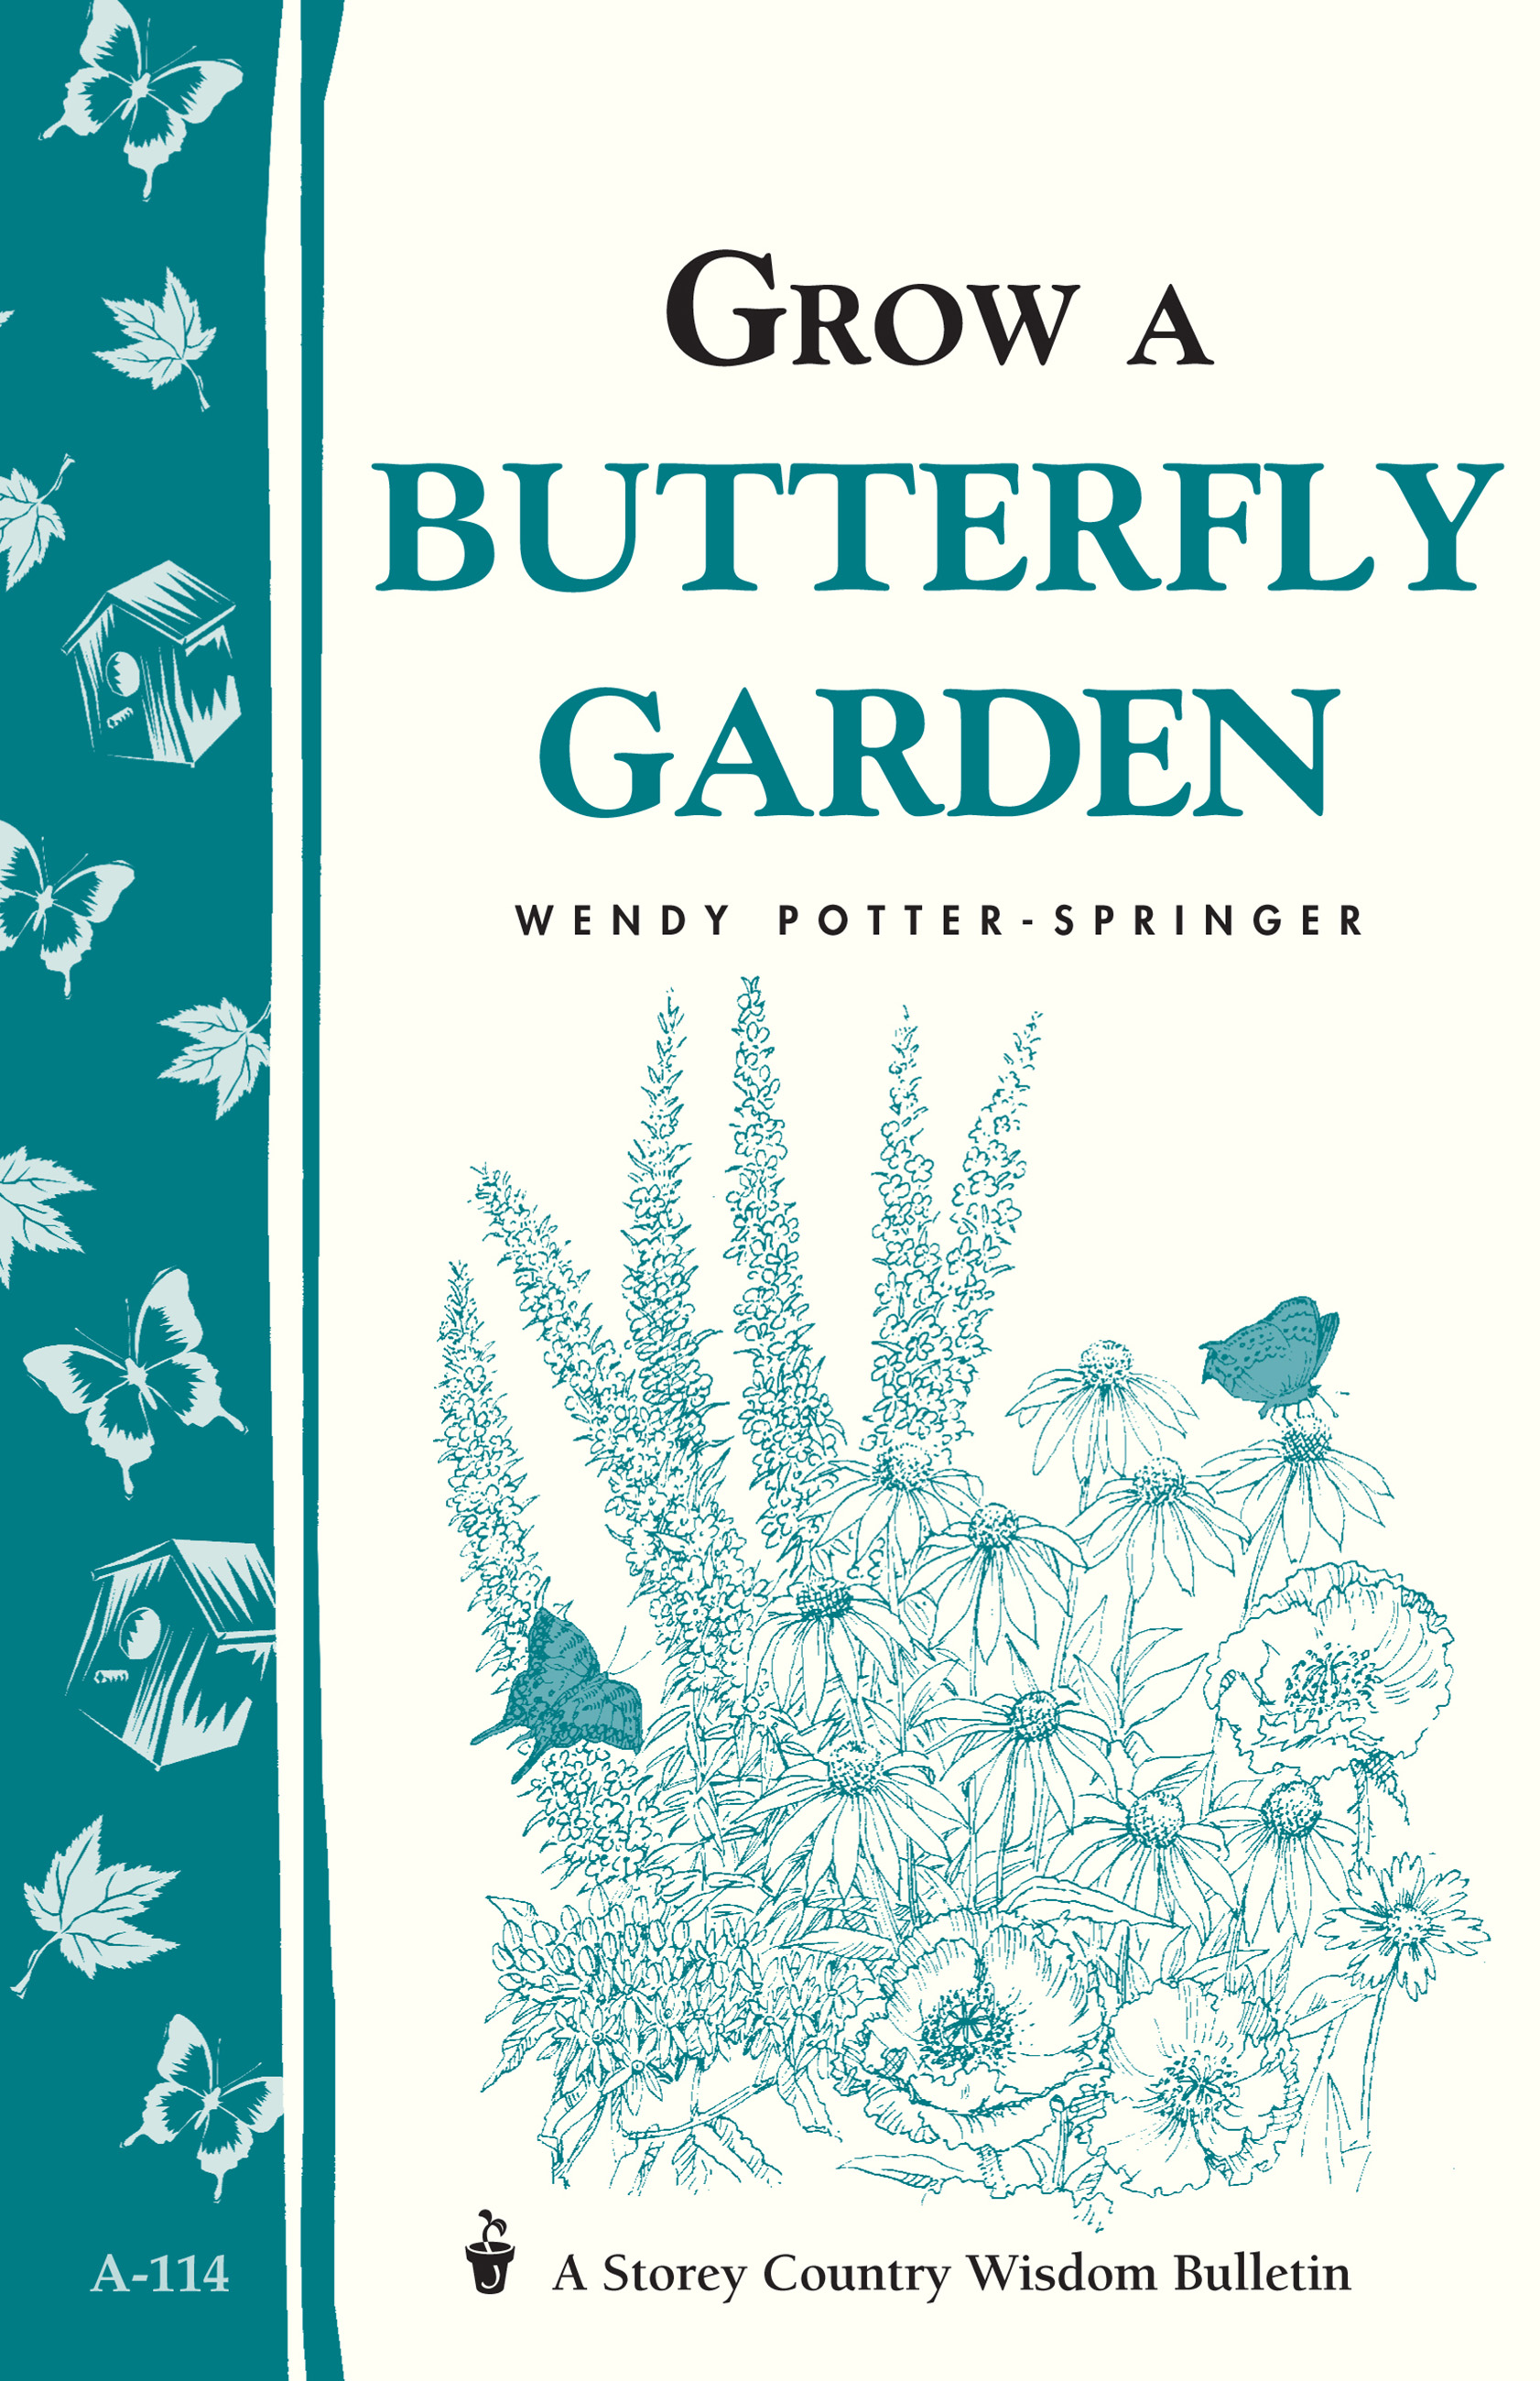 Grow a Butterfly Garden Storey Country Wisdom Bulletin A-114